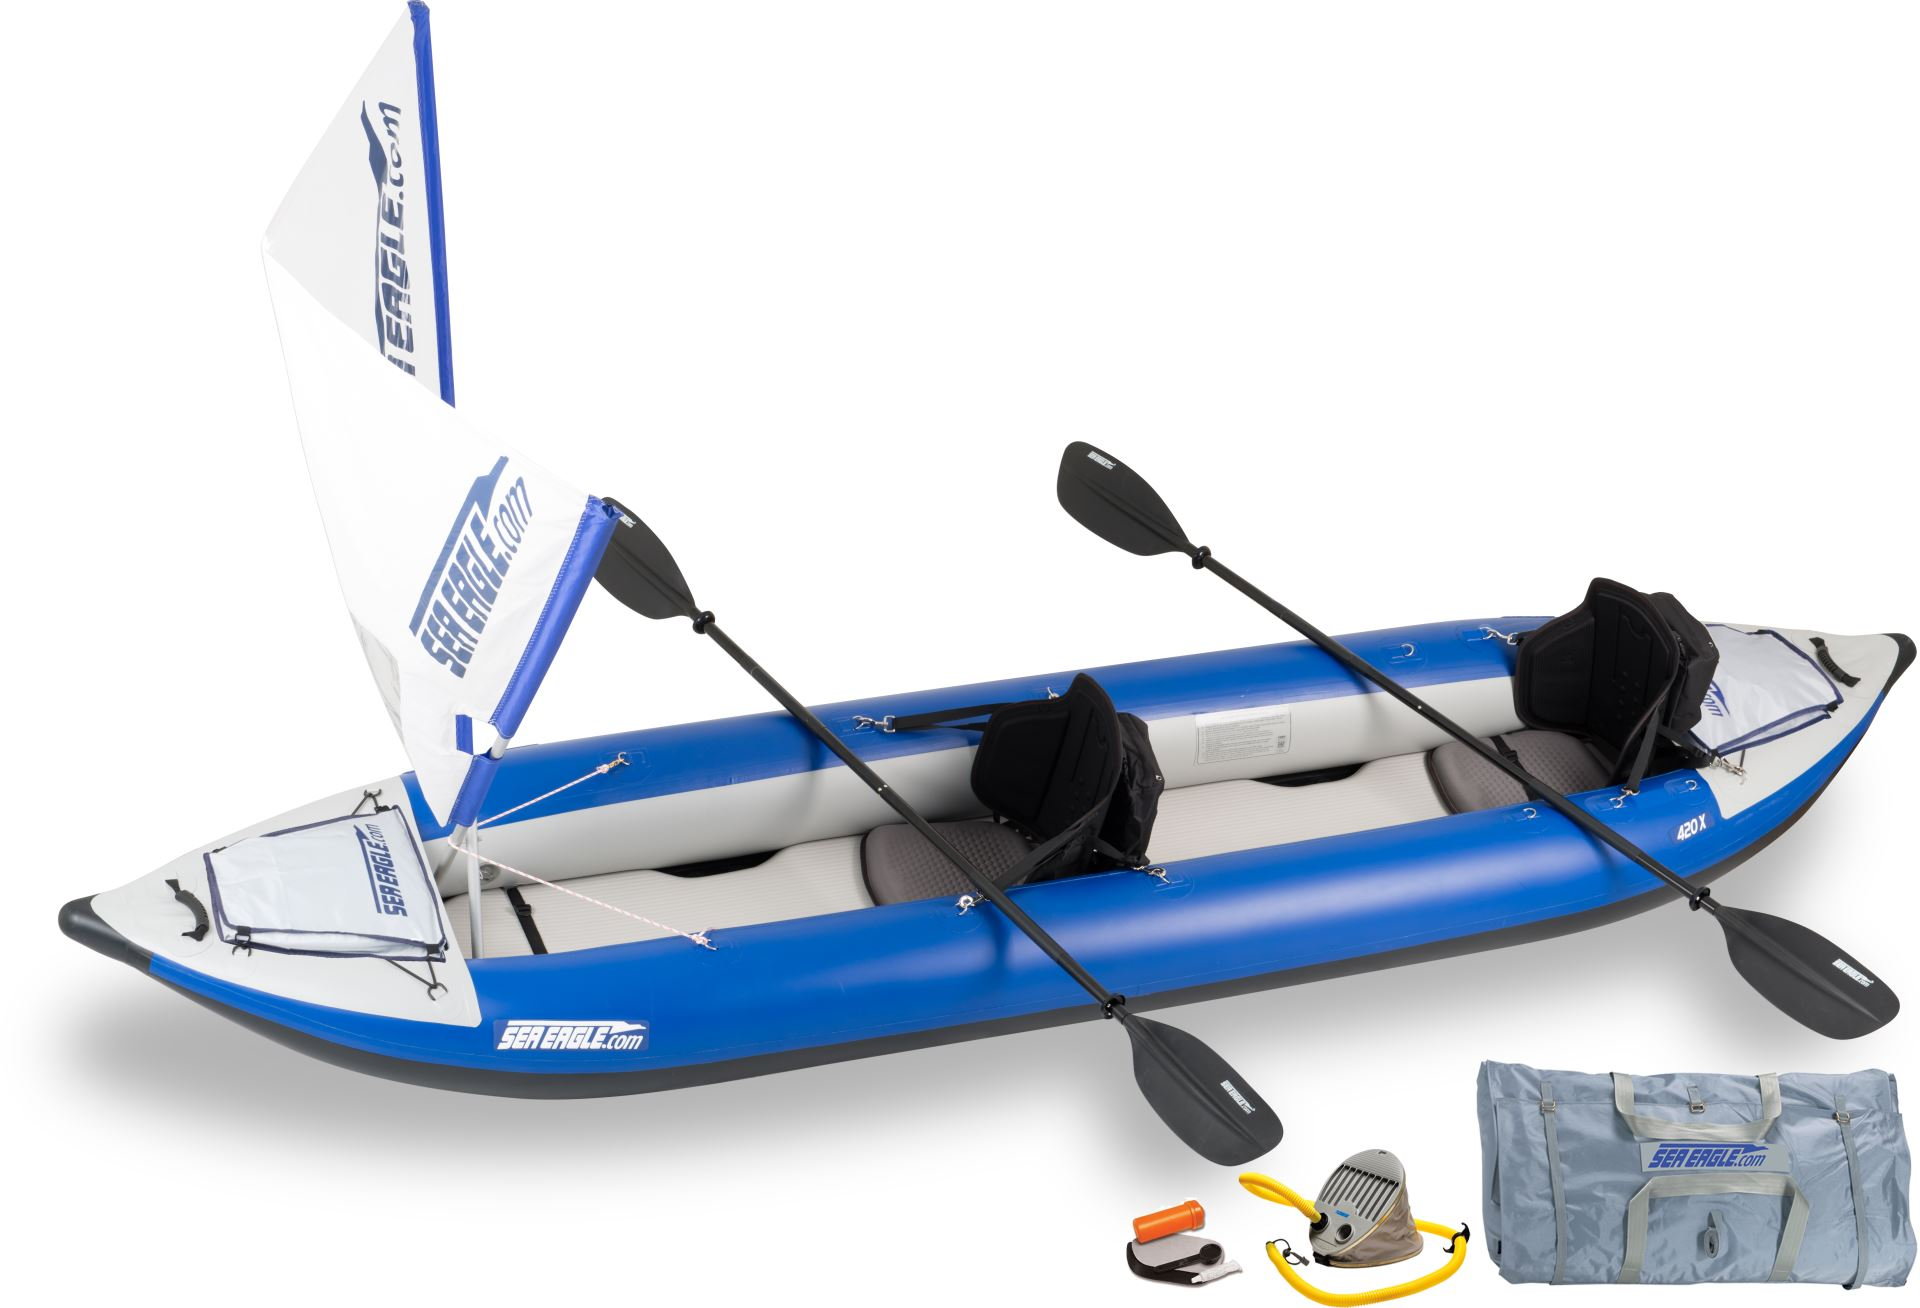 Sea Eagle 420x Explorer Deluxe QuikSail Package 420XK_QS WITH Deluxe Seats